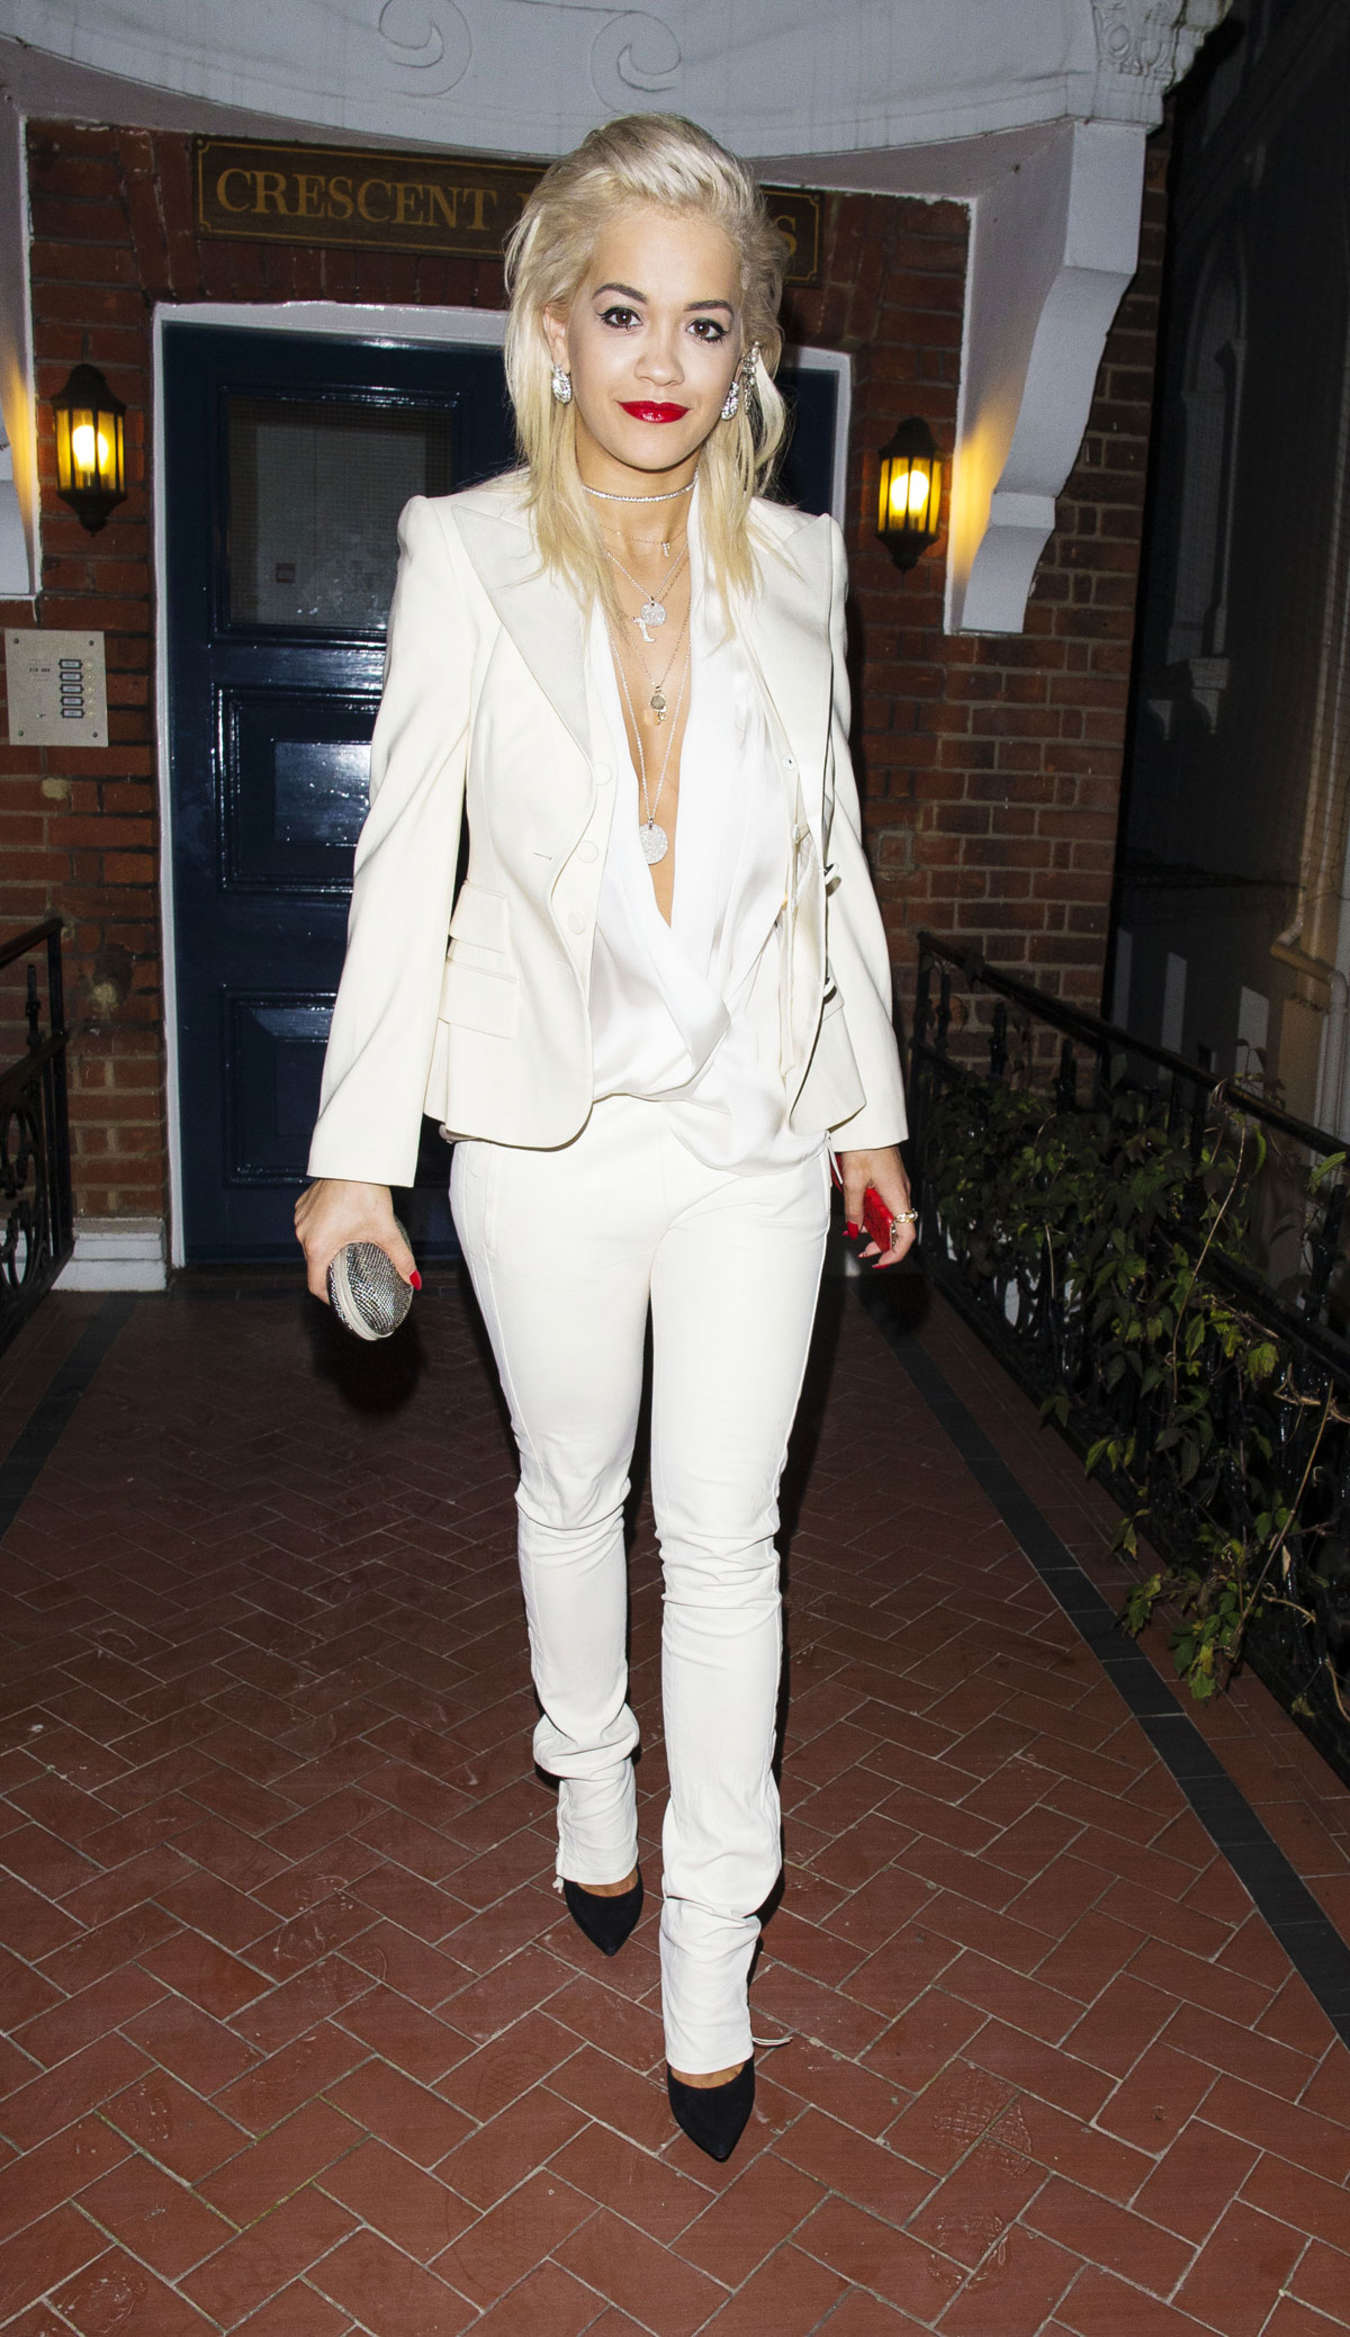 Rita Ora in White Suit Out in London